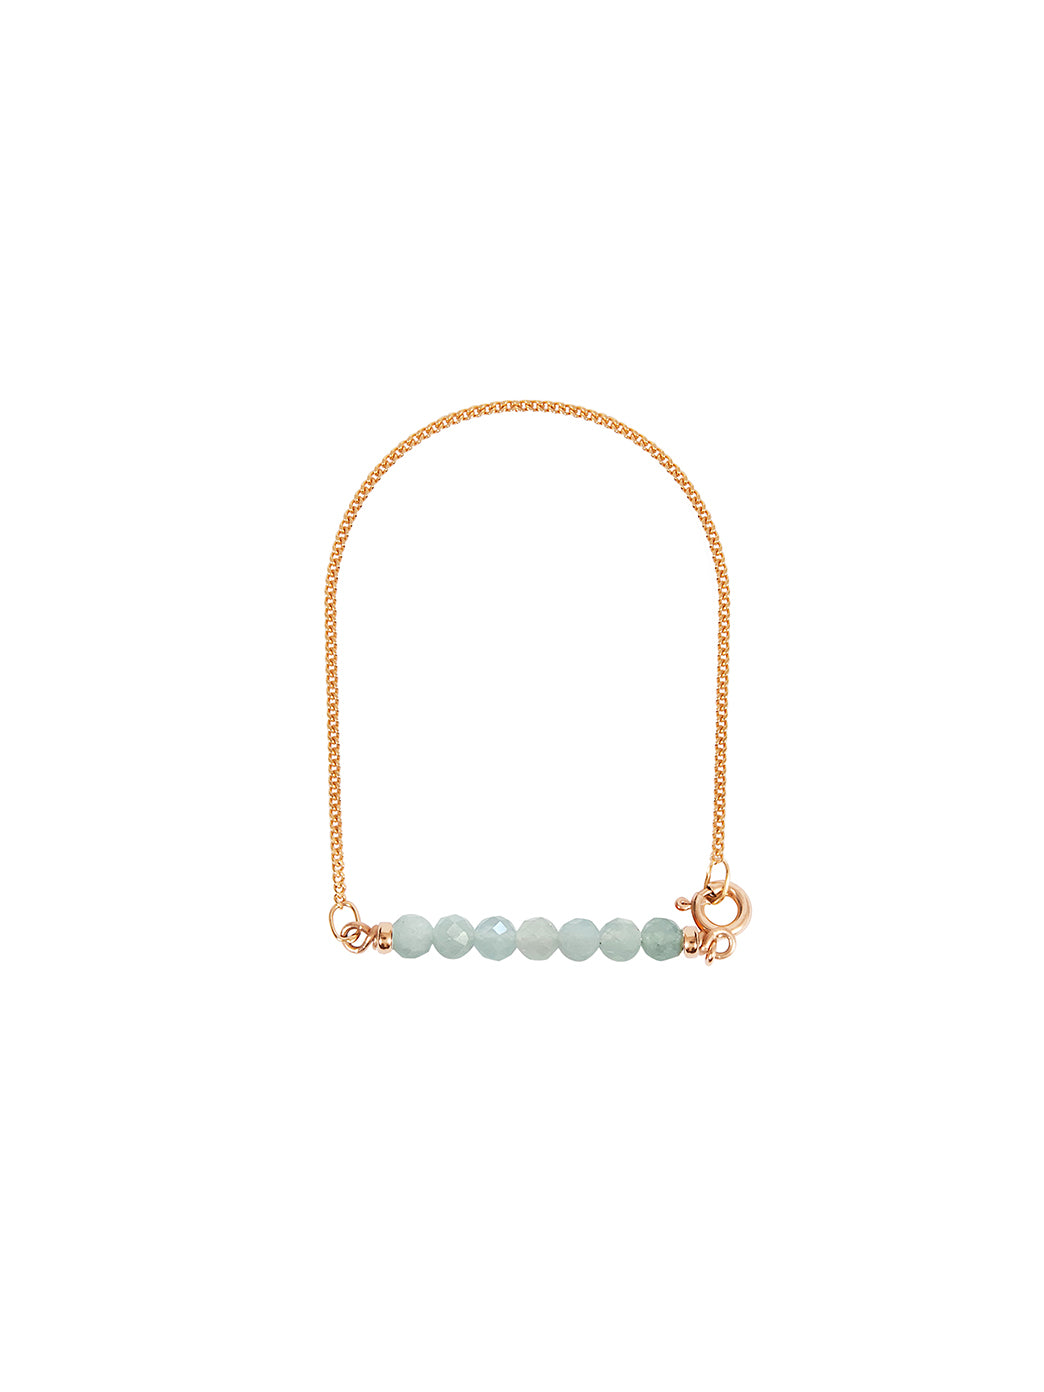 Fiorina Jewellery Gold Friendship Bracelet Aquamarine